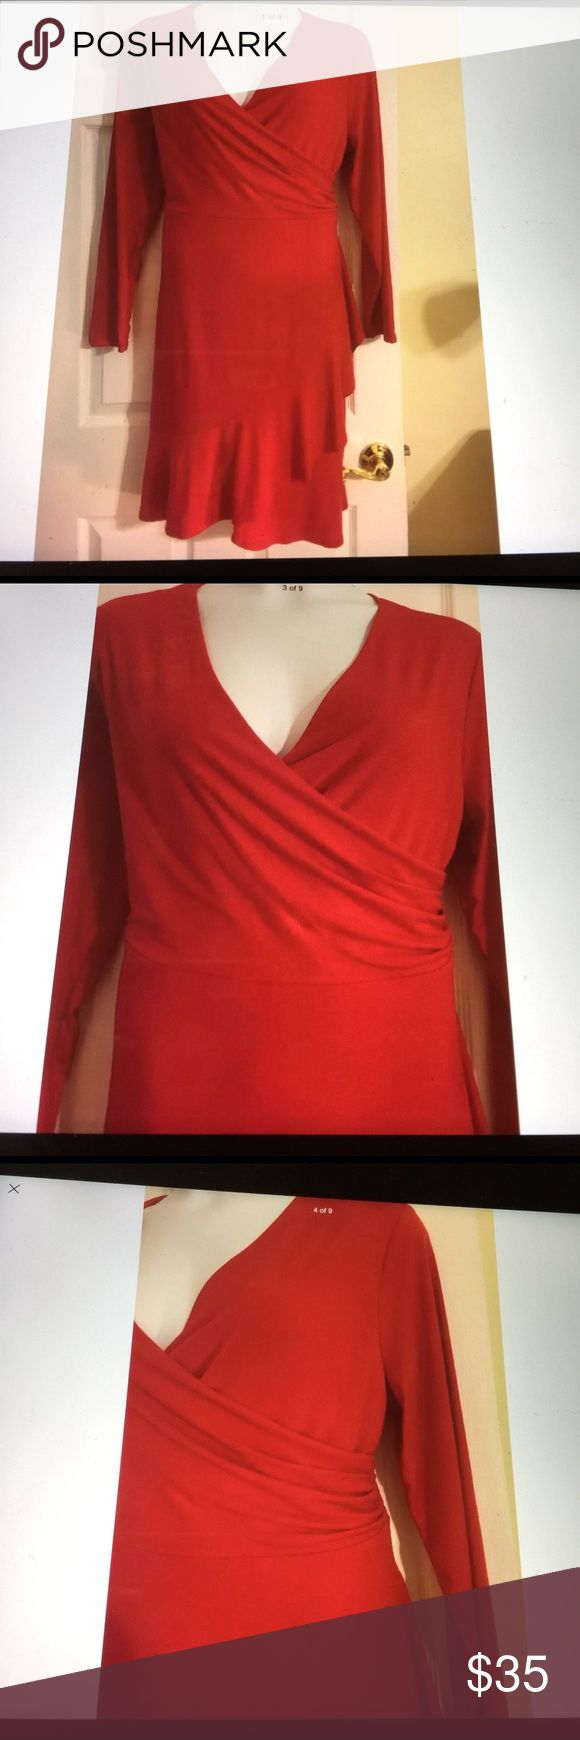 Covington women's wrap ruffle dress plus 3XUSA red This woman's wrap effect dress is a fashionable foundation for dressing up or dress down. This red dress offers a flattering fit with a surplice neck that forms a deep v neckline. Originally $70 plus tax. Covington Dresses Mini